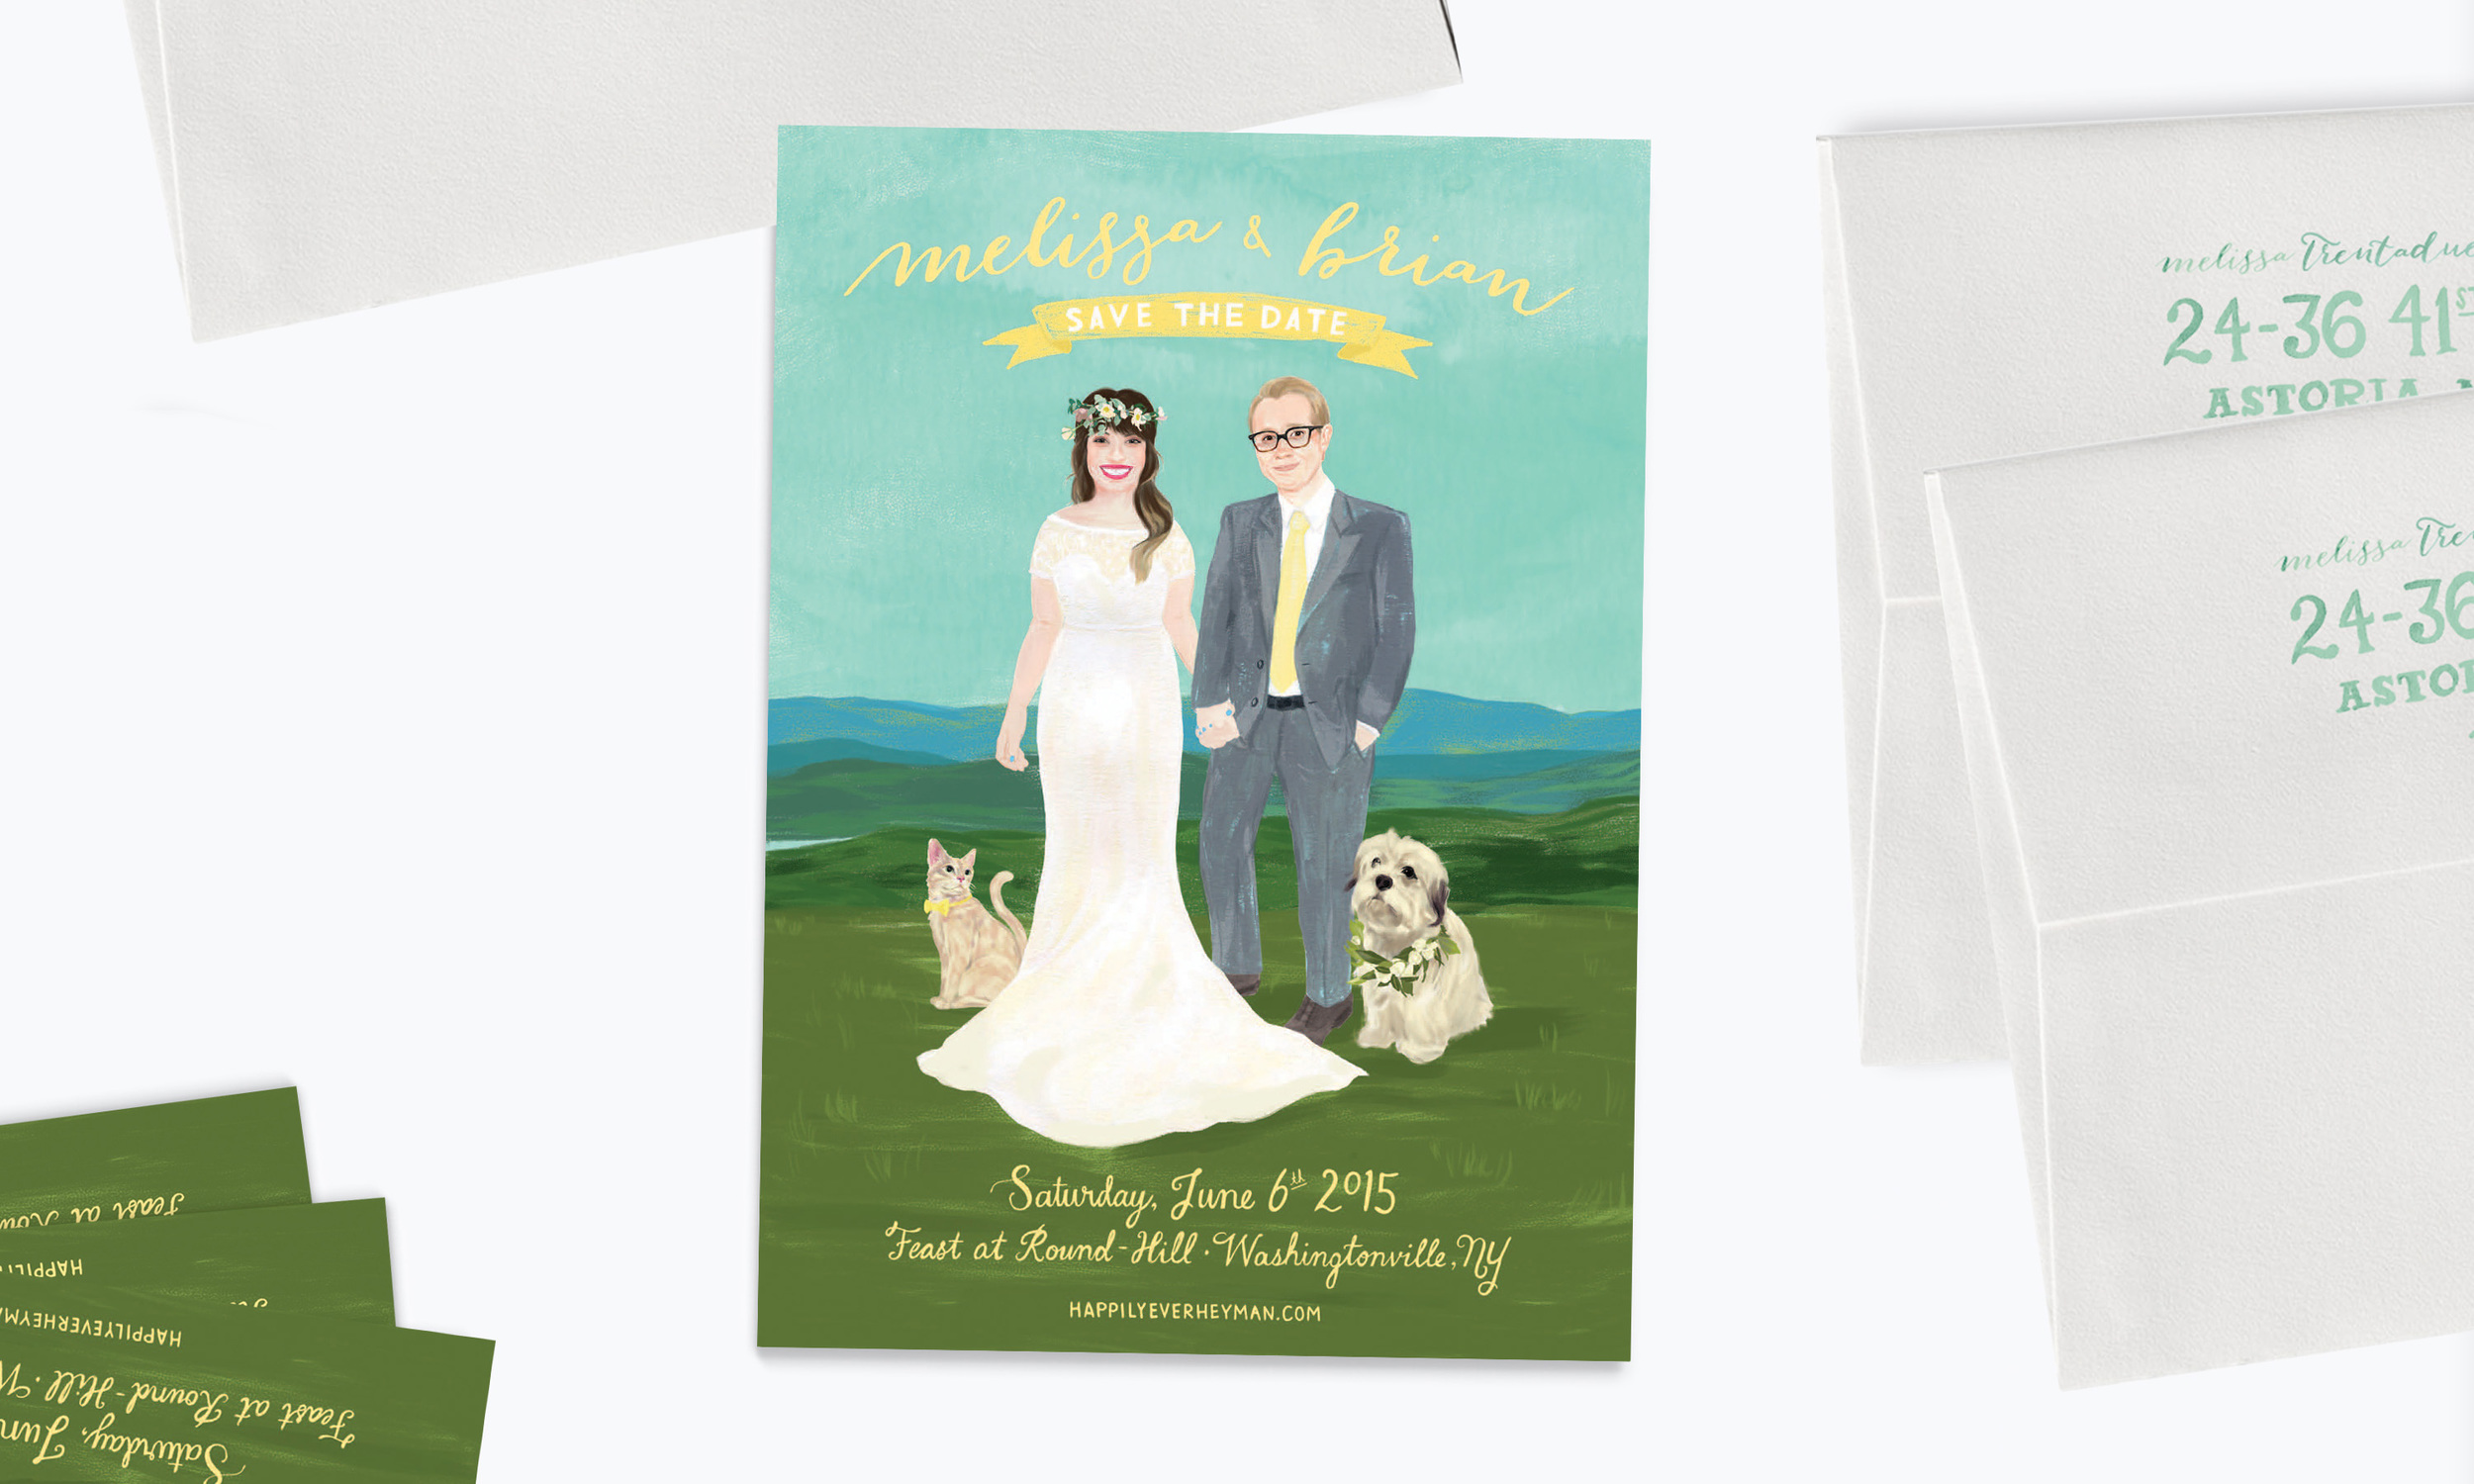 Melissa & Brian</a><strong>Custom Save the Date</strong>